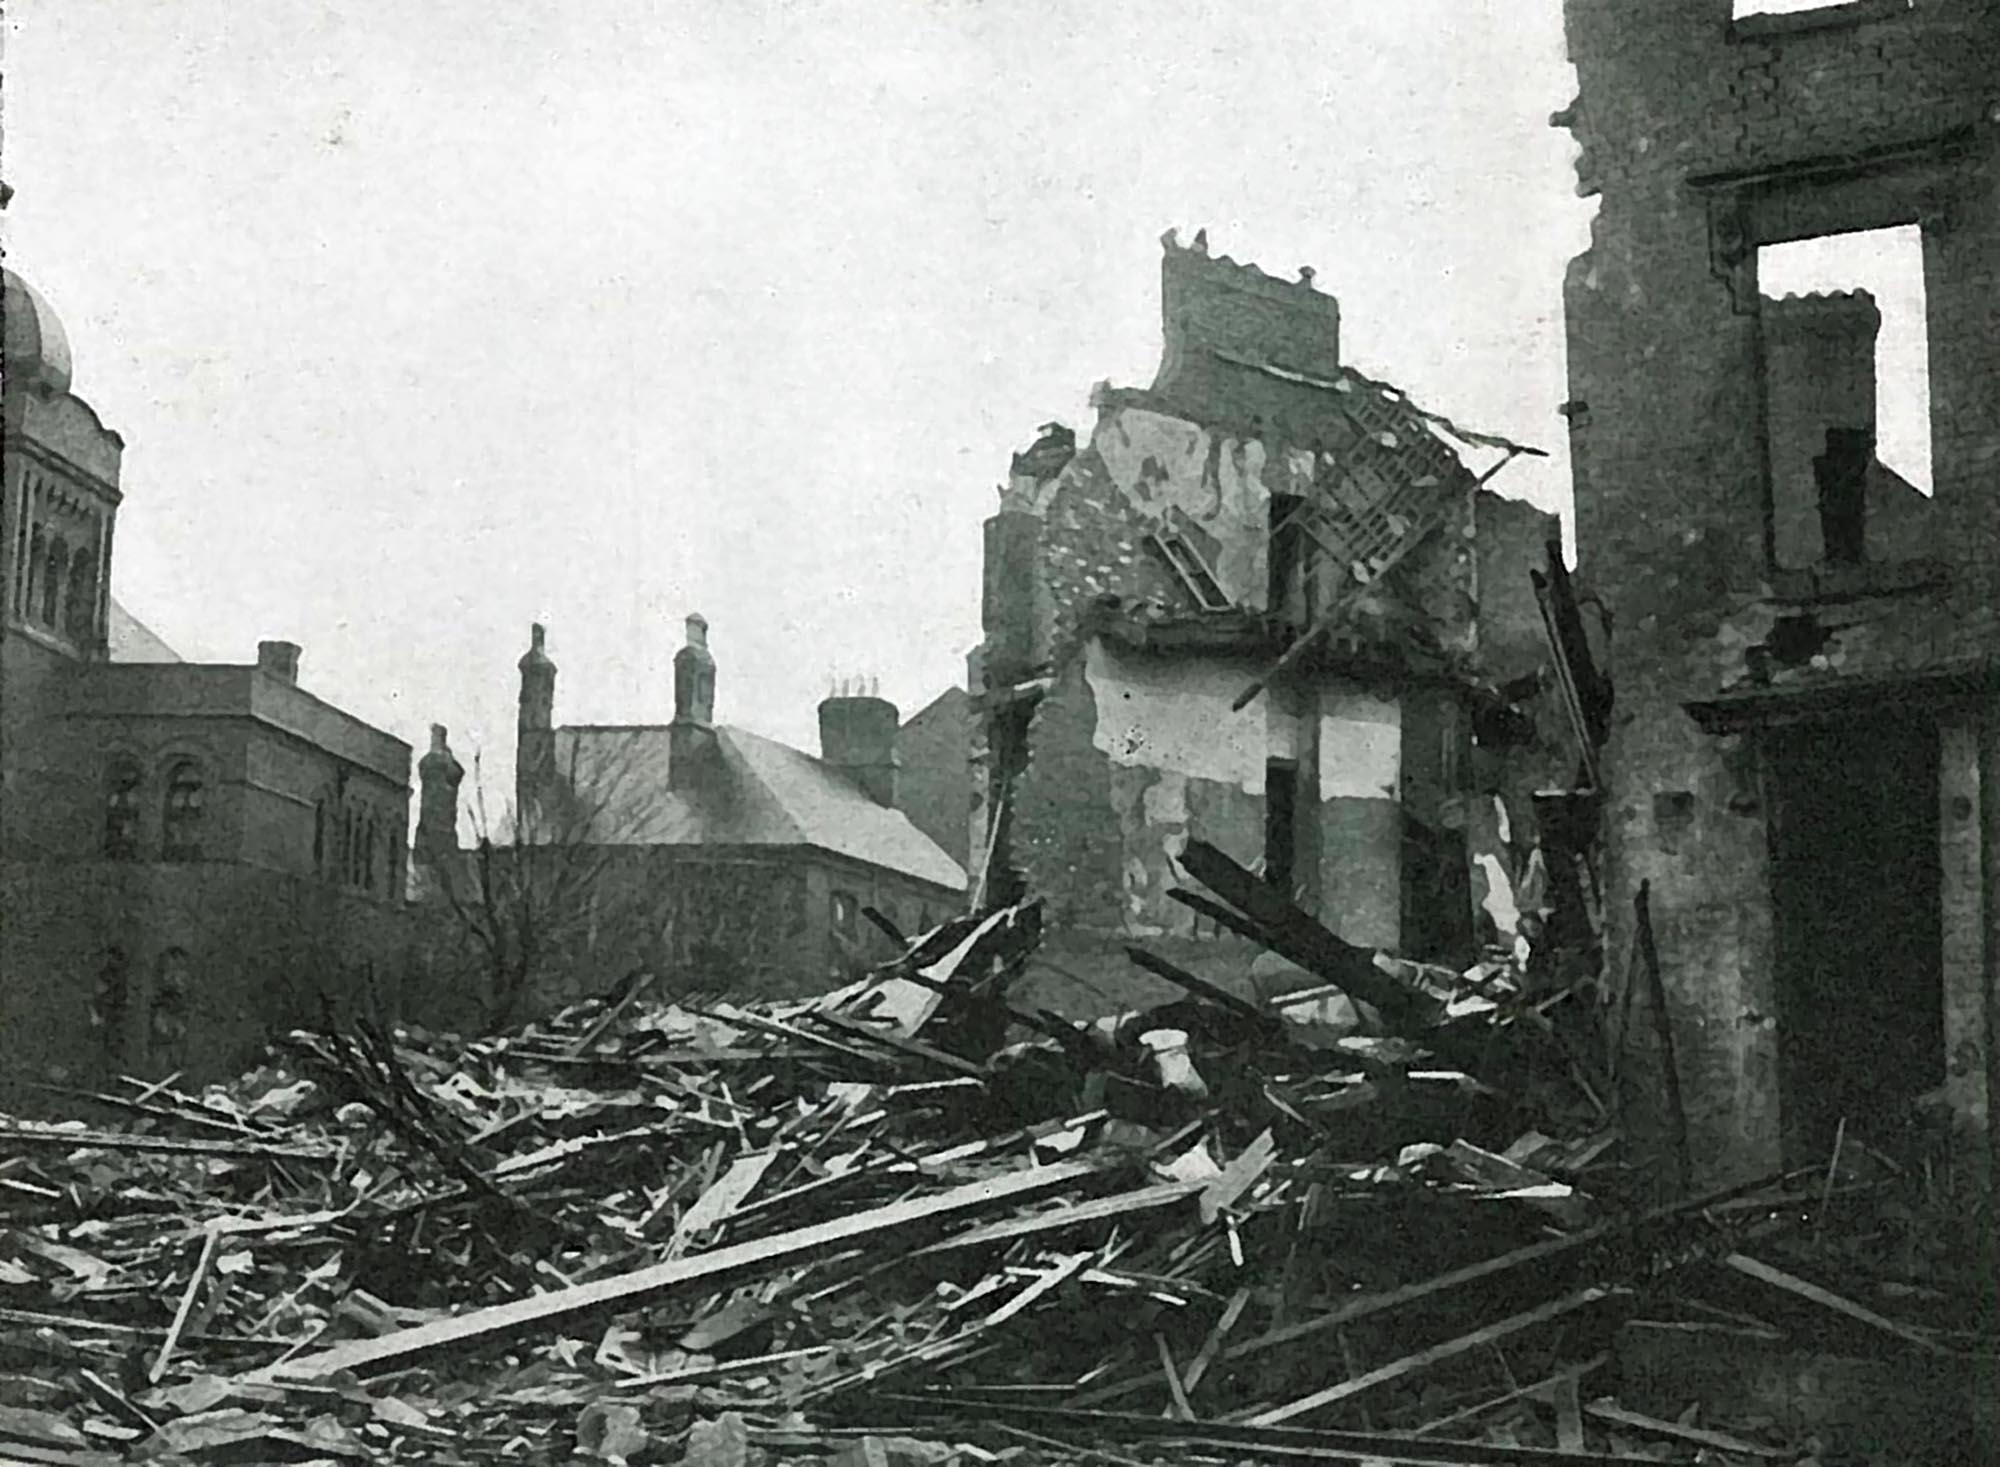 Highfield Street November 1940 after the bombing raid. The synagogue, on the far left, survived - Leicester Mercury Archive at the University of Leicester